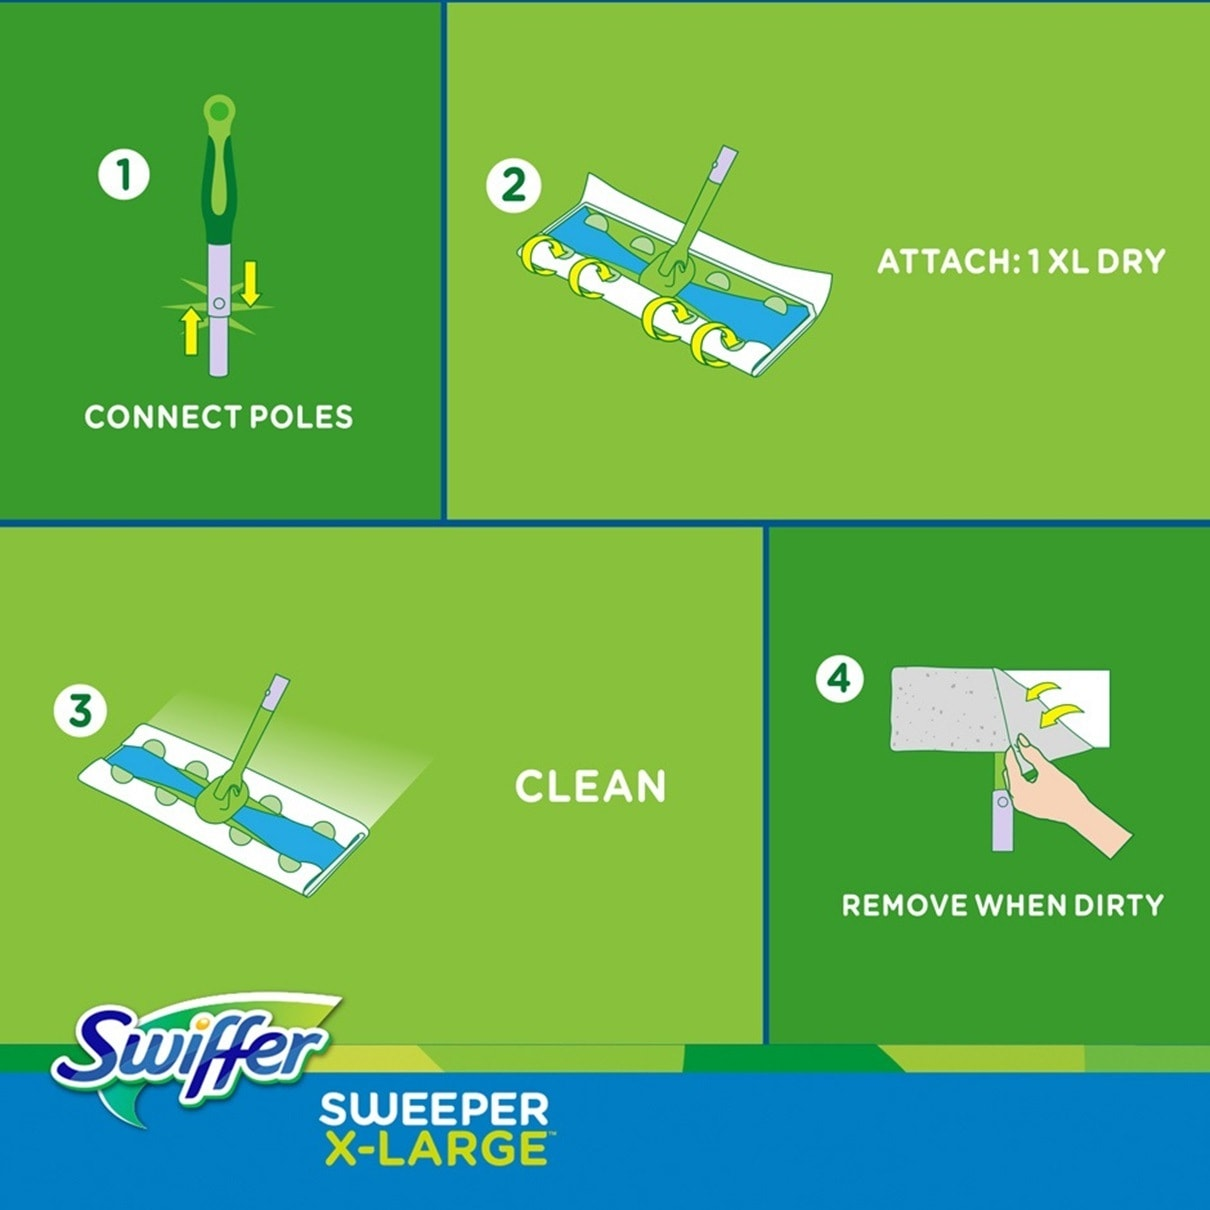 Swiffer Sweeper X large How To Clean